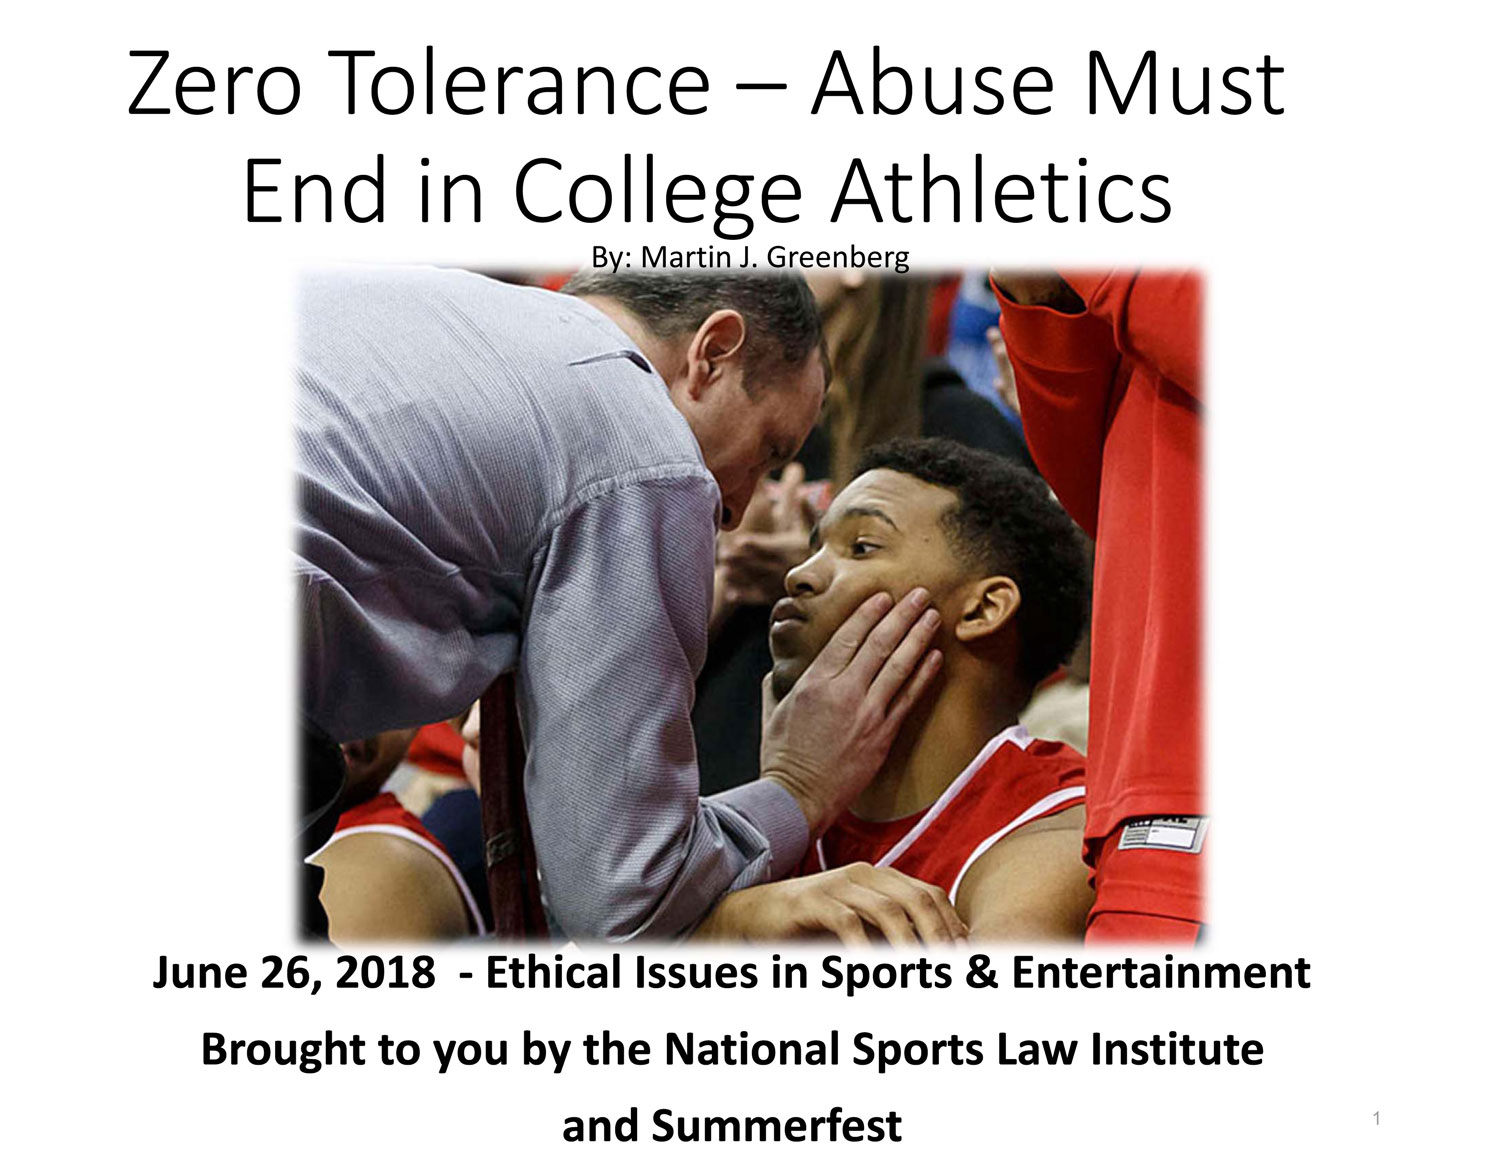 June 26, 2018 - Ethical Issues in Sports & Entertainment | Martin J. Greenberg